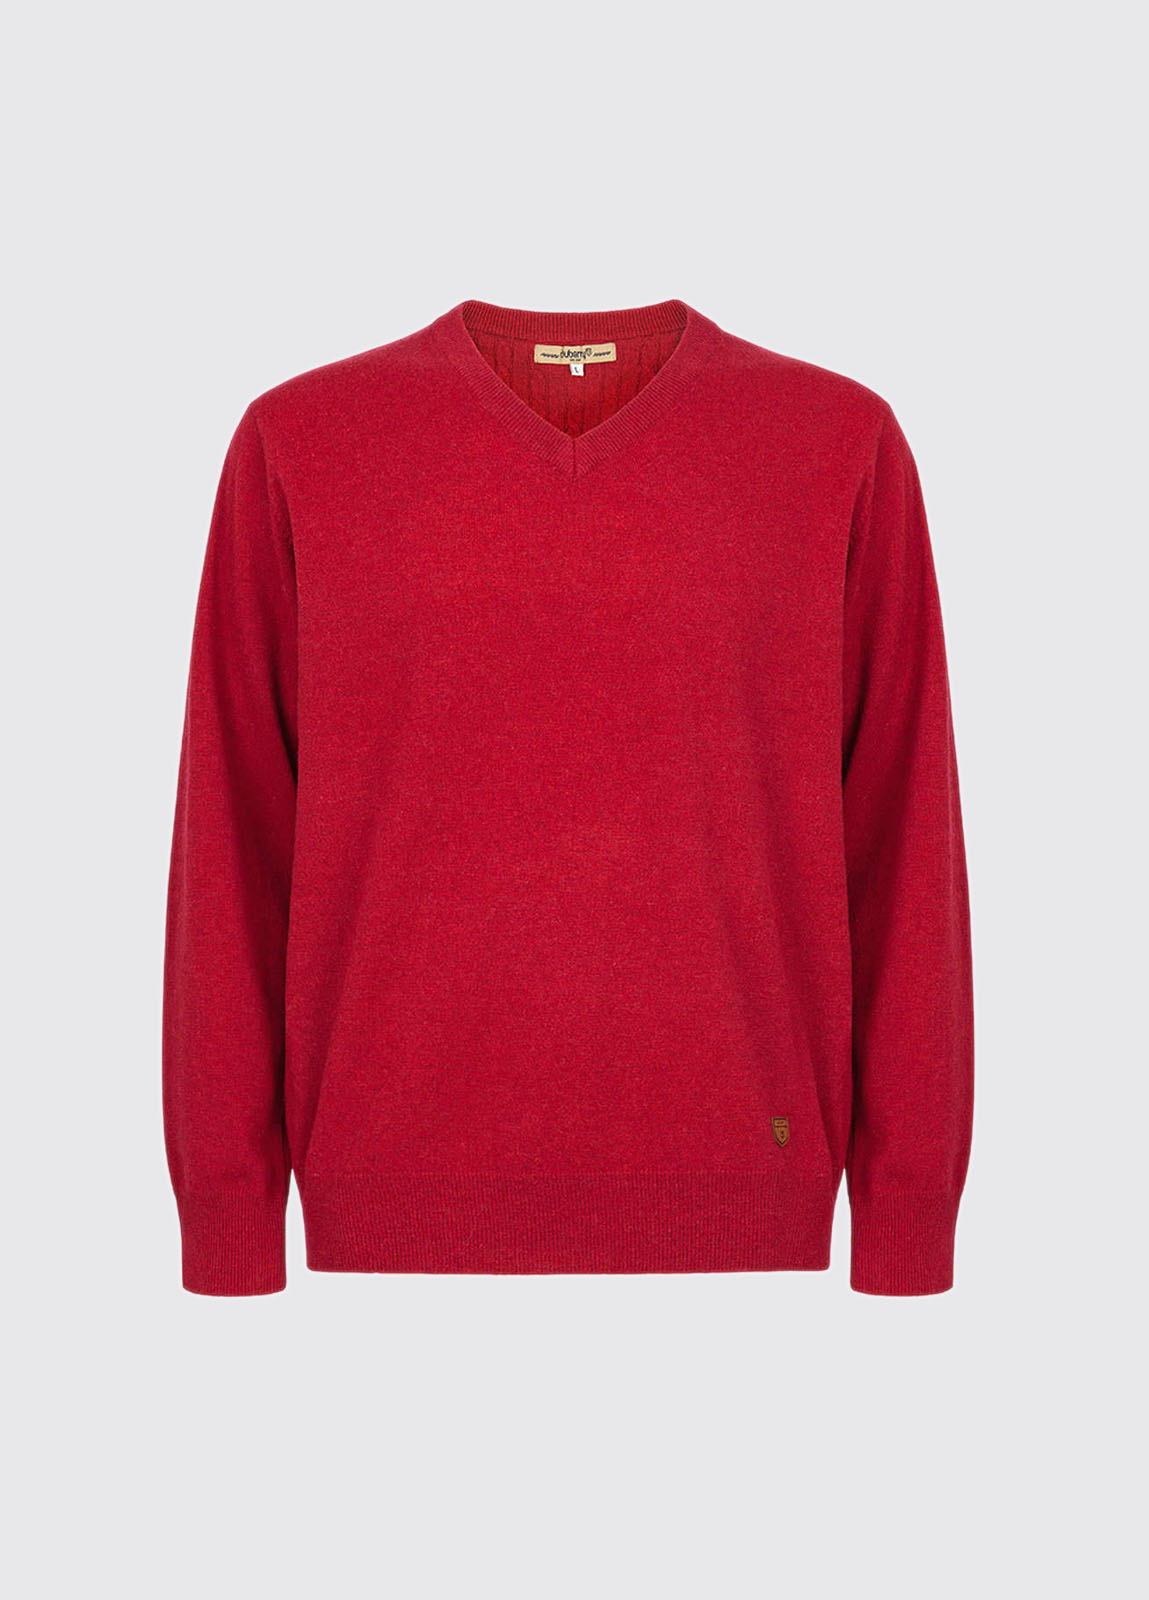 Brennan Men's Knitted Sweater - Crimson